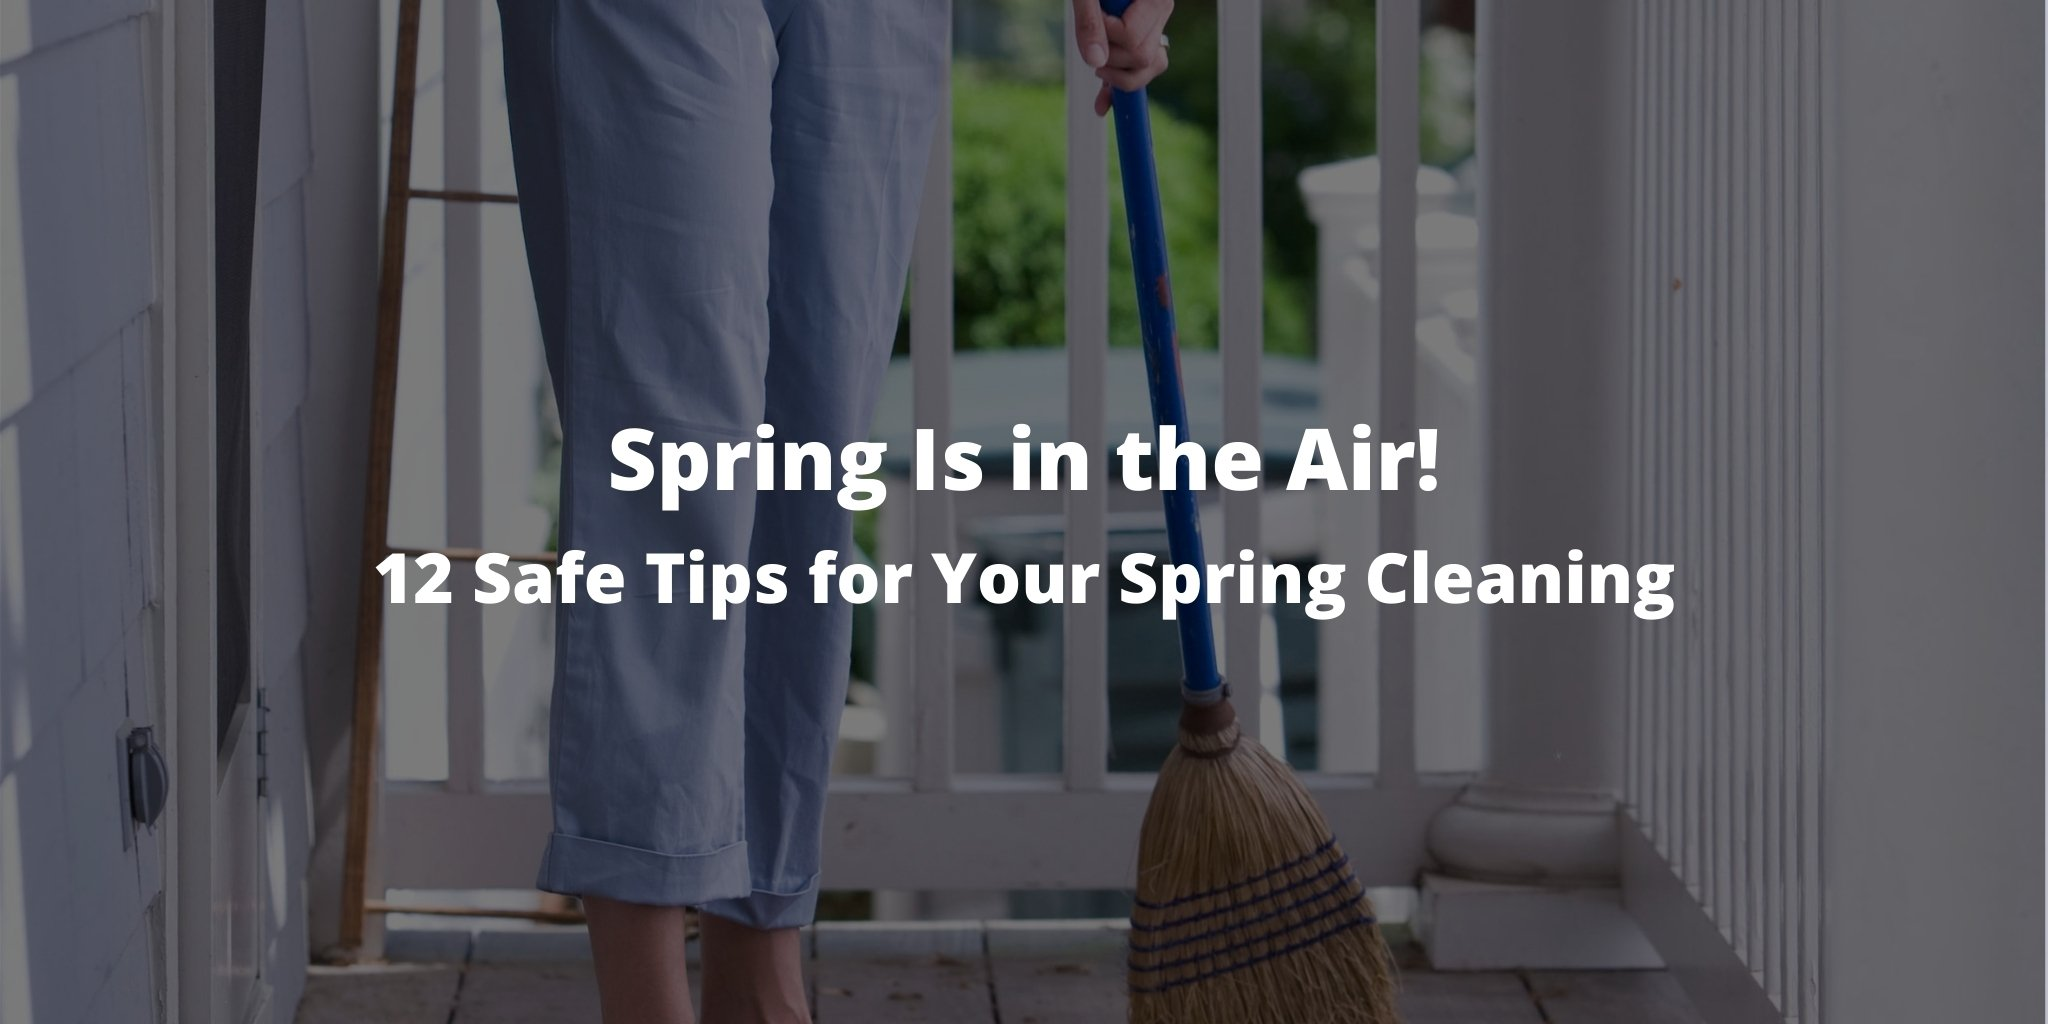 Spring Is in the Air! 12 Safe Tips for Your Spring Cleaning